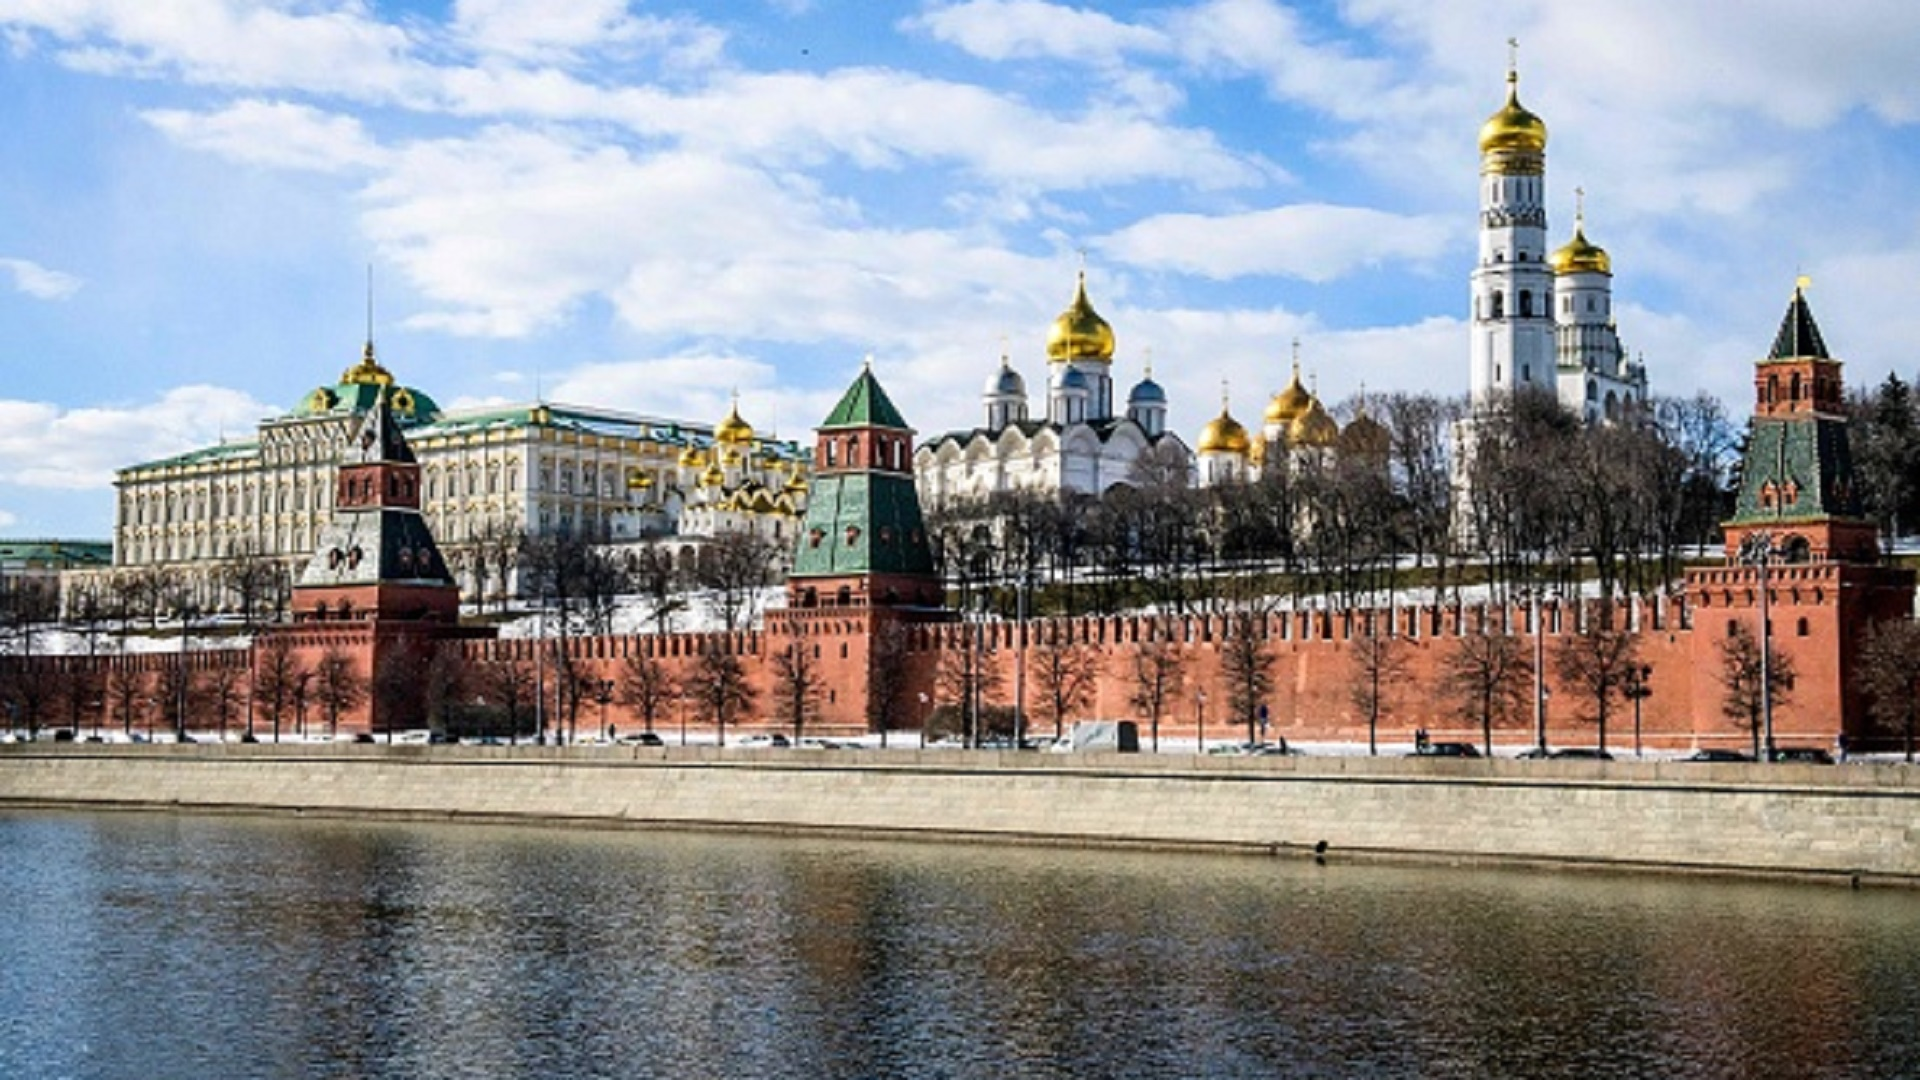 A view of the Moskva river and the Kremlin towers and cathedrals in Moscow